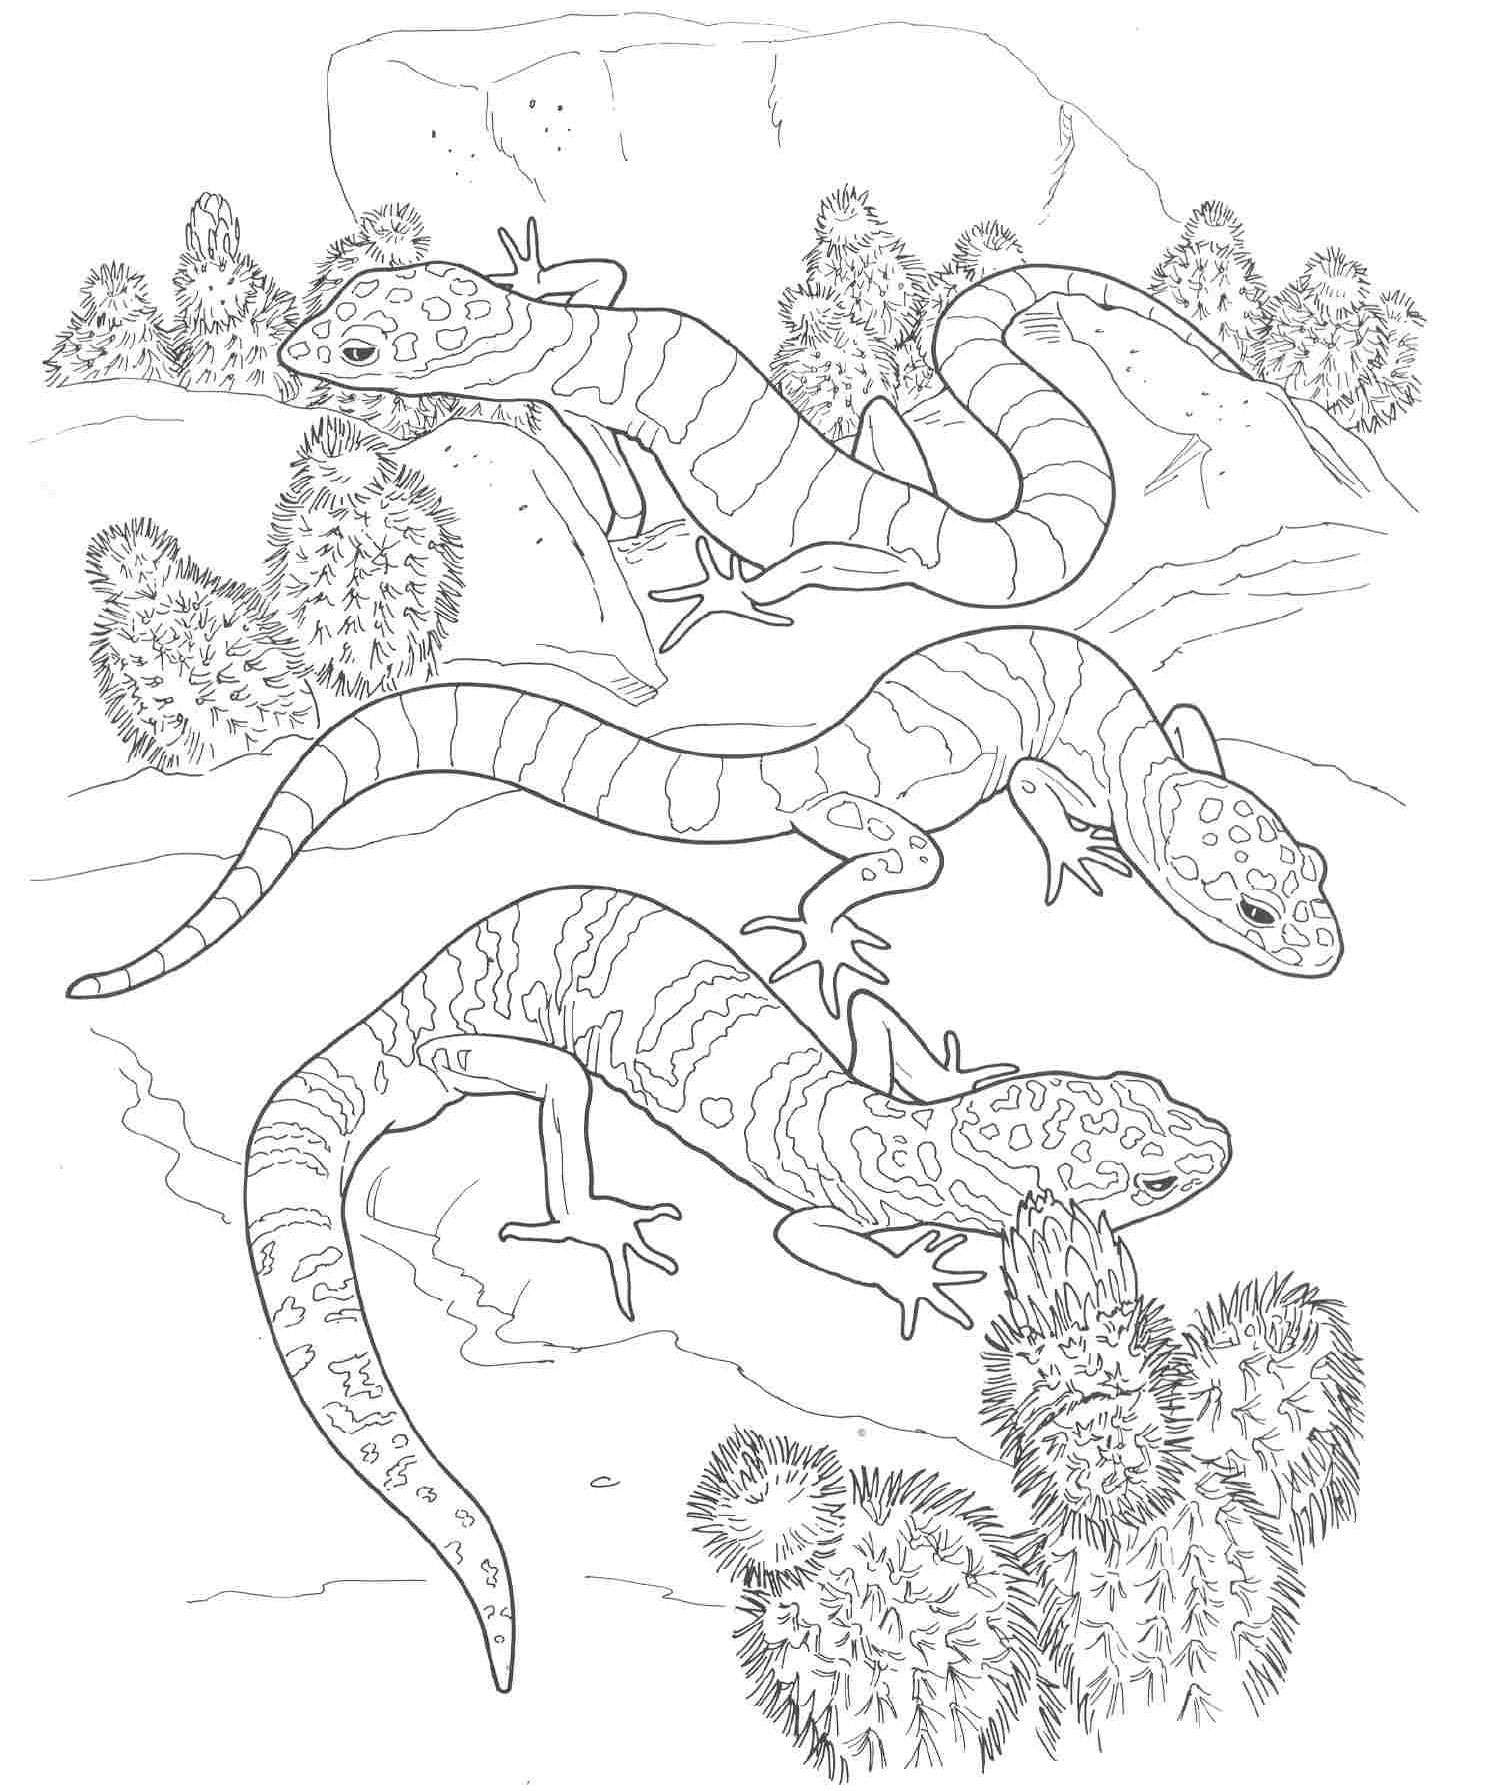 1500x1791 Desert Animals And Plants Coloring Pages Download Coloring